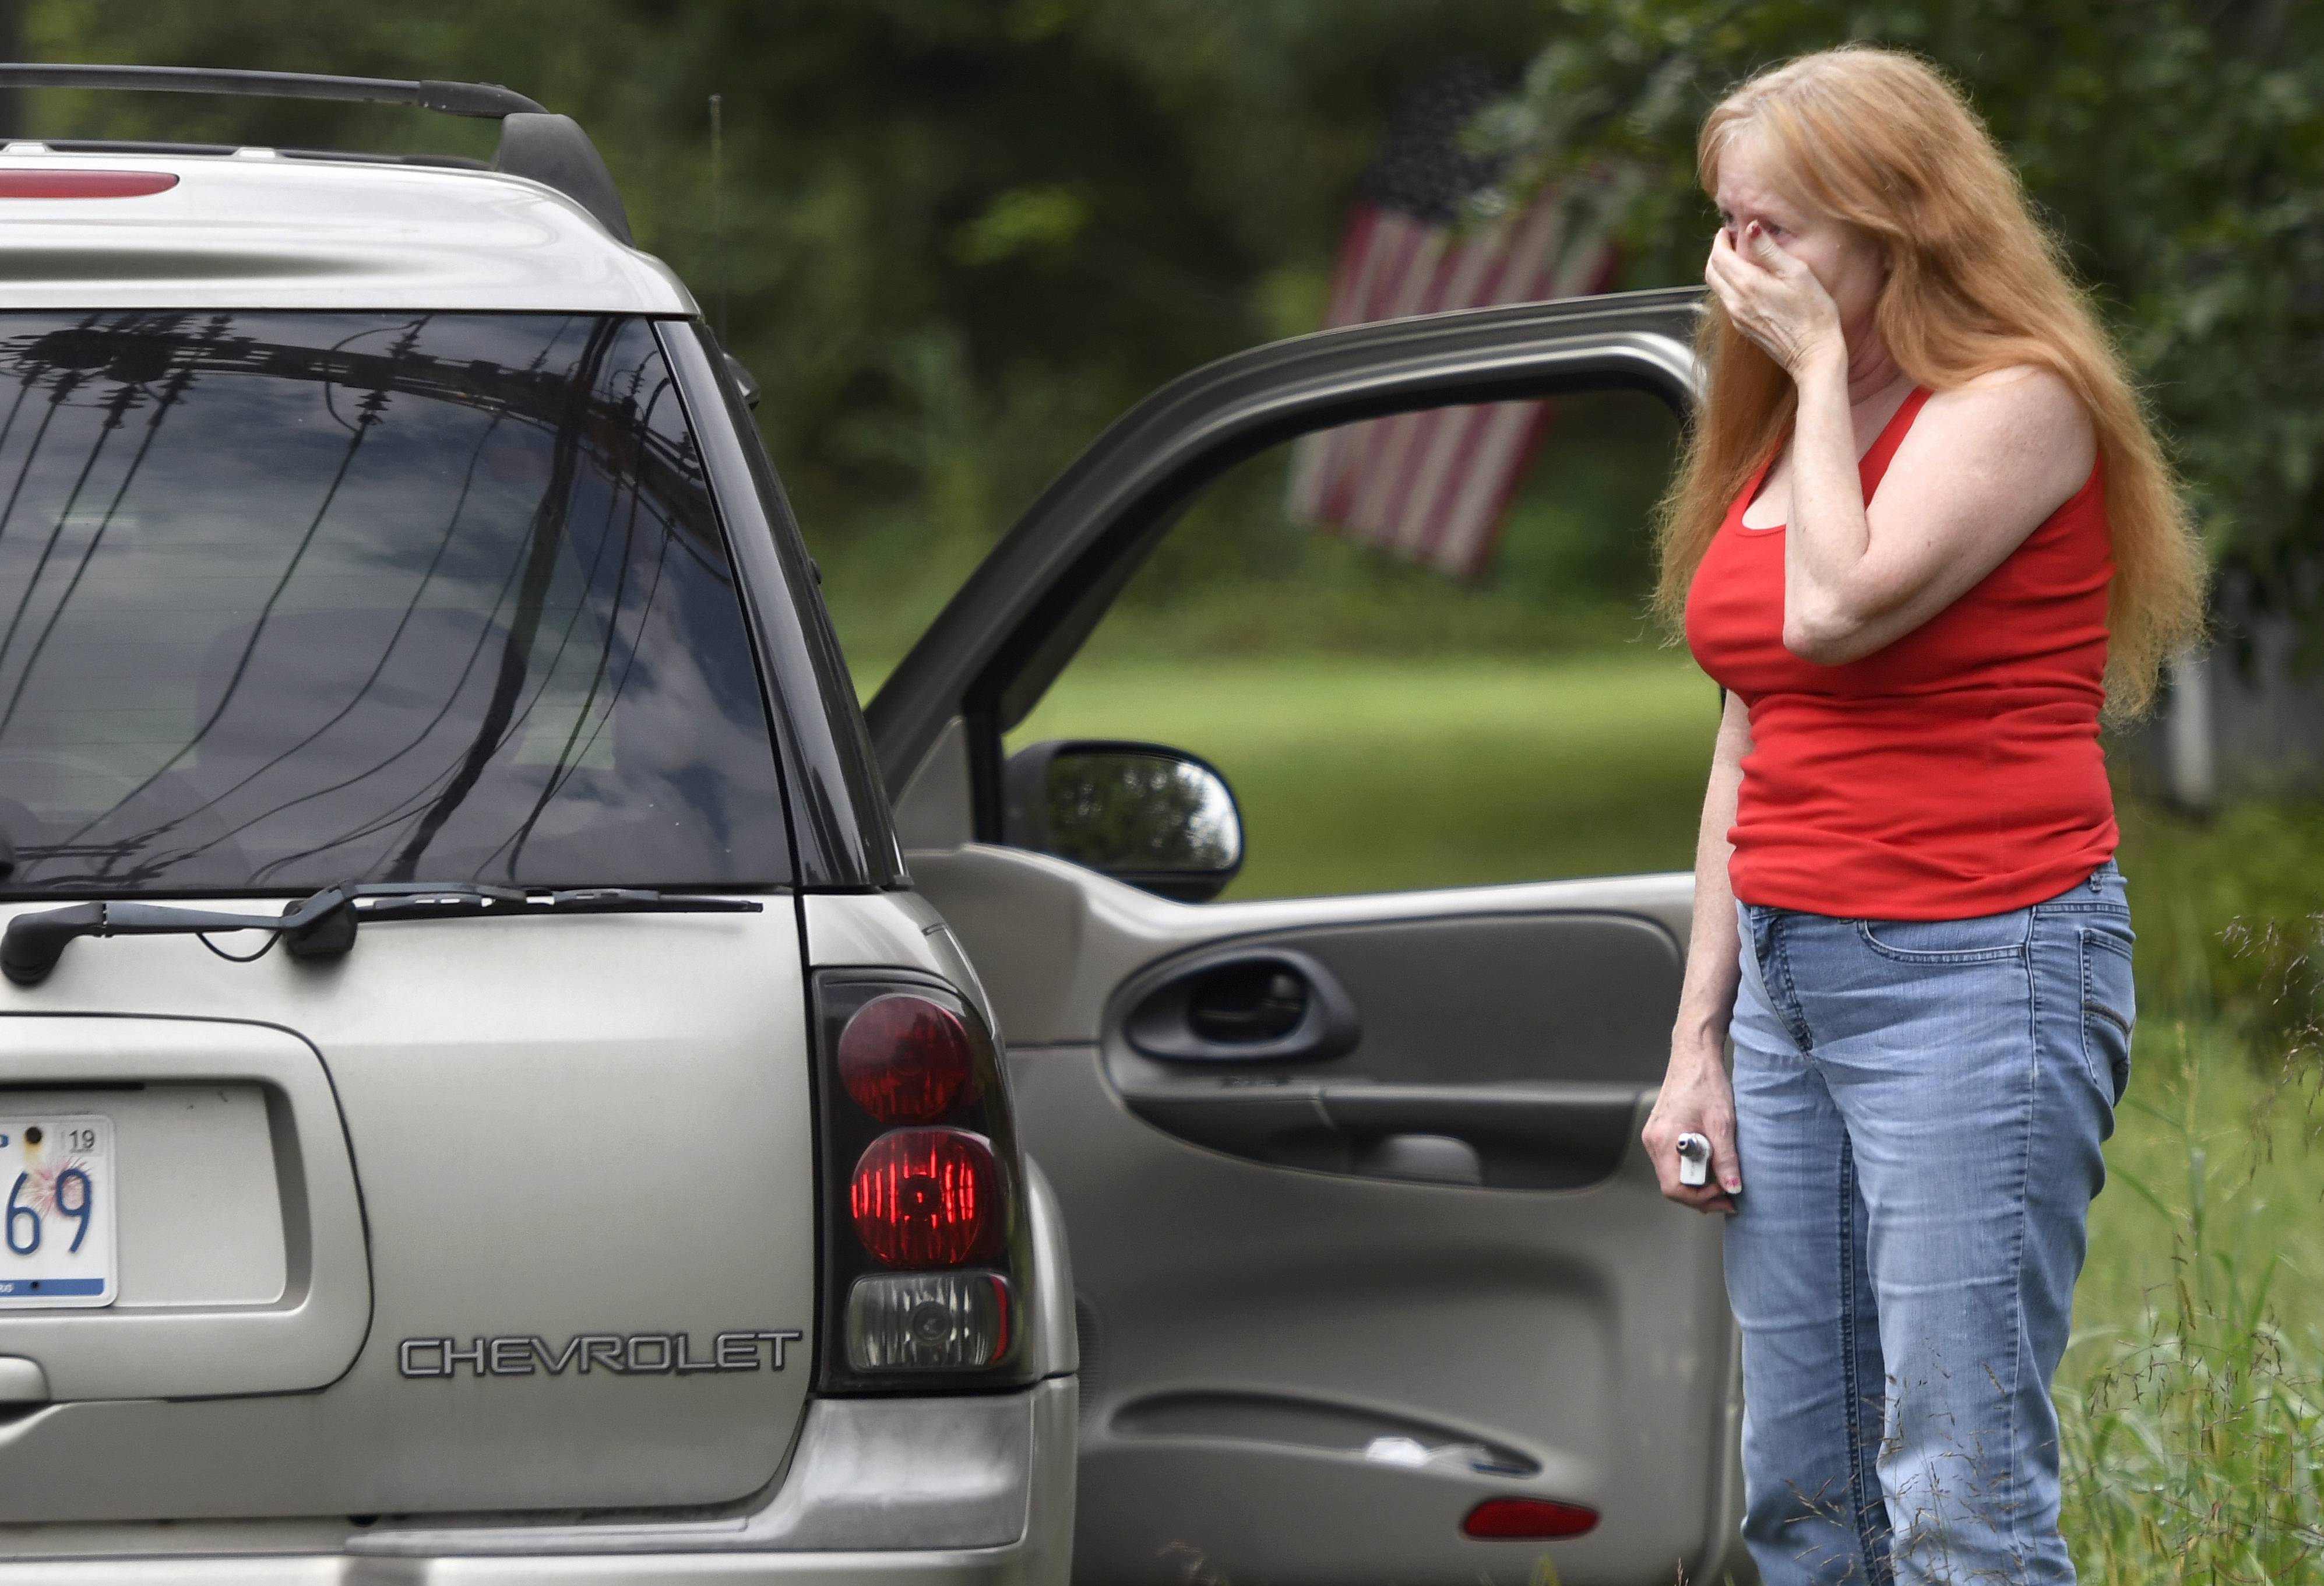 Shirley Pollack, of Perryville, Md. reacts to what authorities have called a shooting with multiple victims in Perryman, Md. on Thursday, Sept. 20, 2018. Pollack was concerned about her son, who worked near the scene of the shooting. (AP Photo/Steve Ruark)